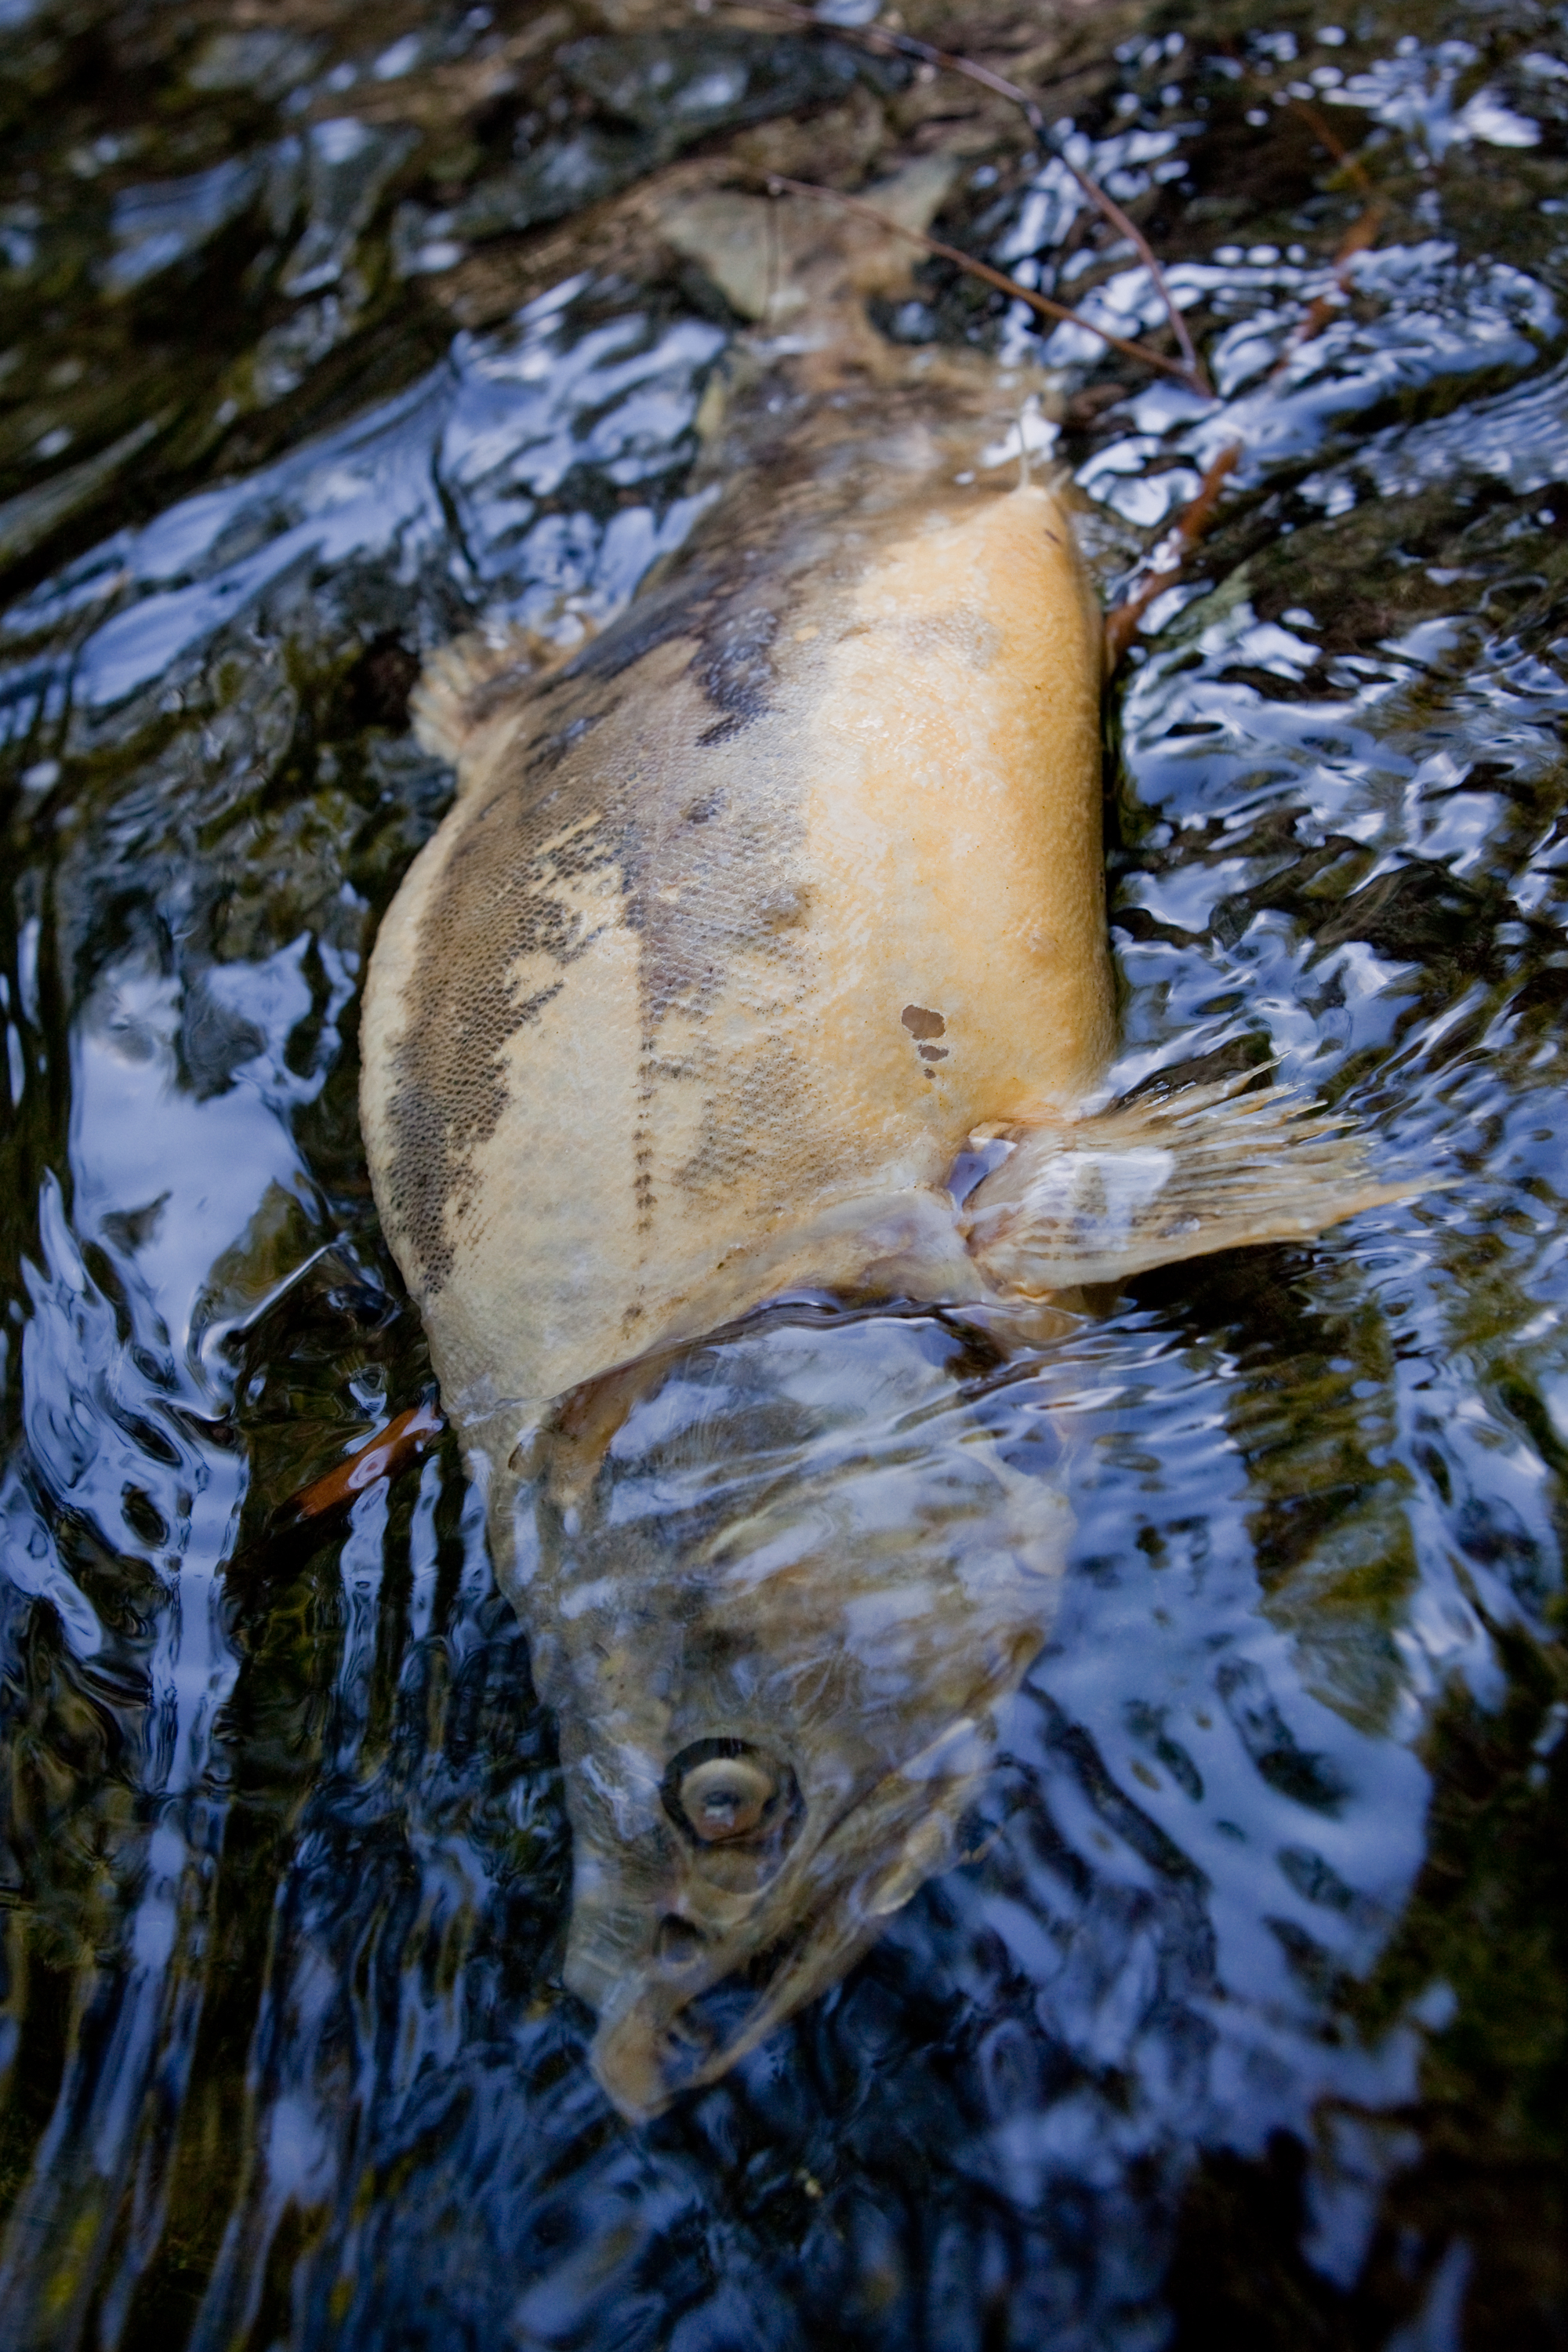 A salmon carcass begins to decay in a small stream in Sitka, Alaska.  Salmon return to the river to spawn and are essential contributors to the ecosystem in their death.